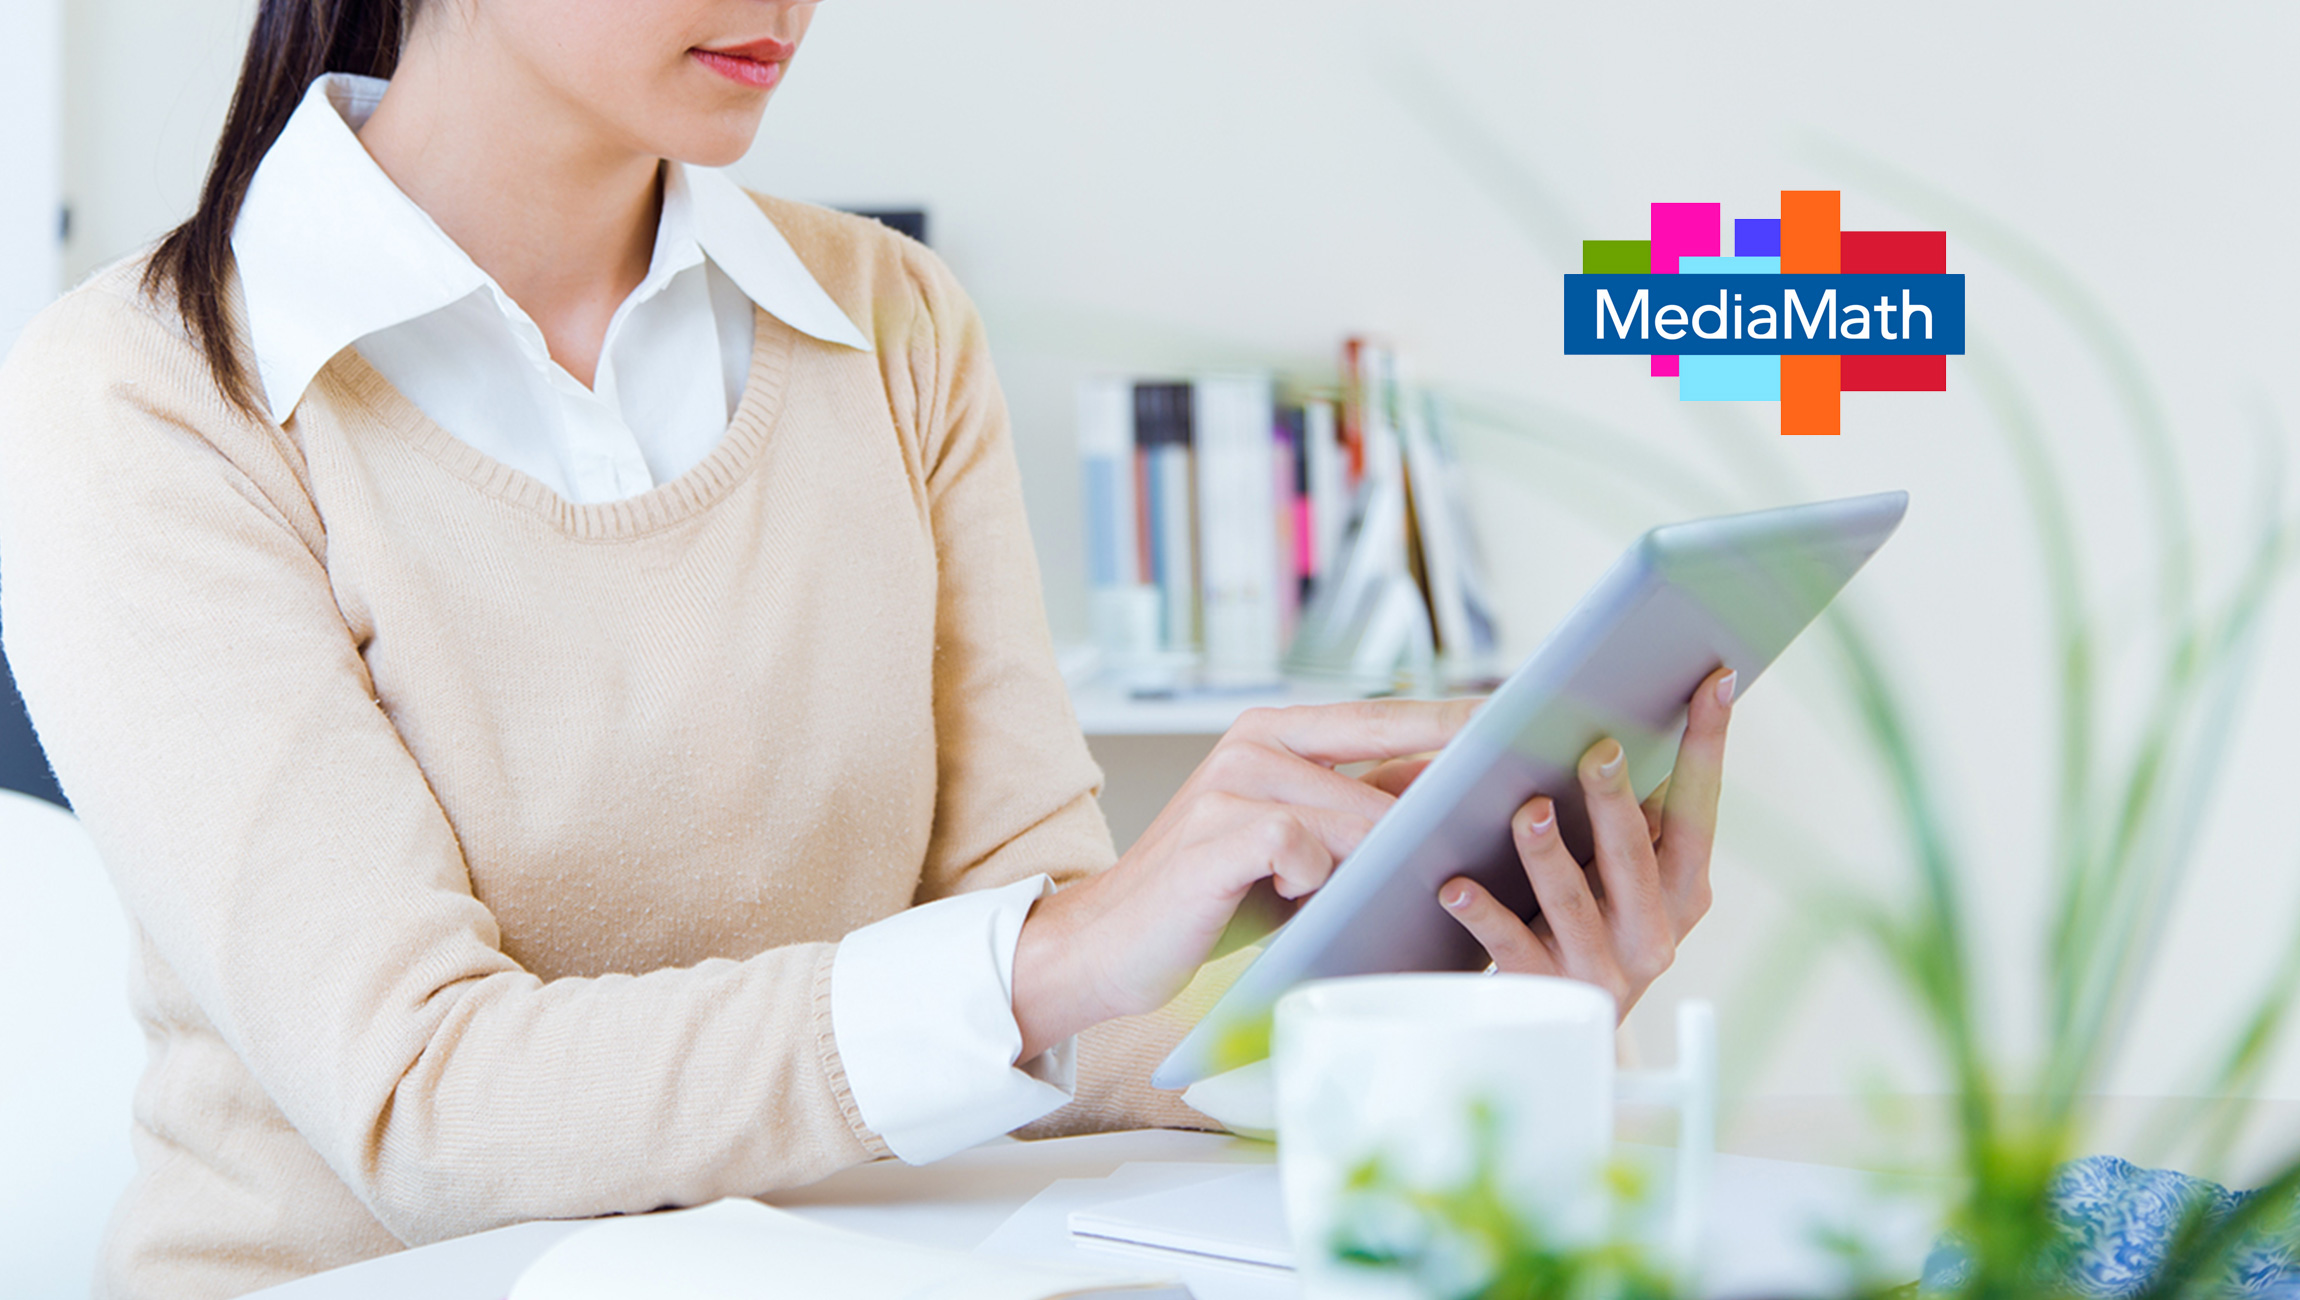 MediaMath Announces Enhancements to Native Advertising Offering